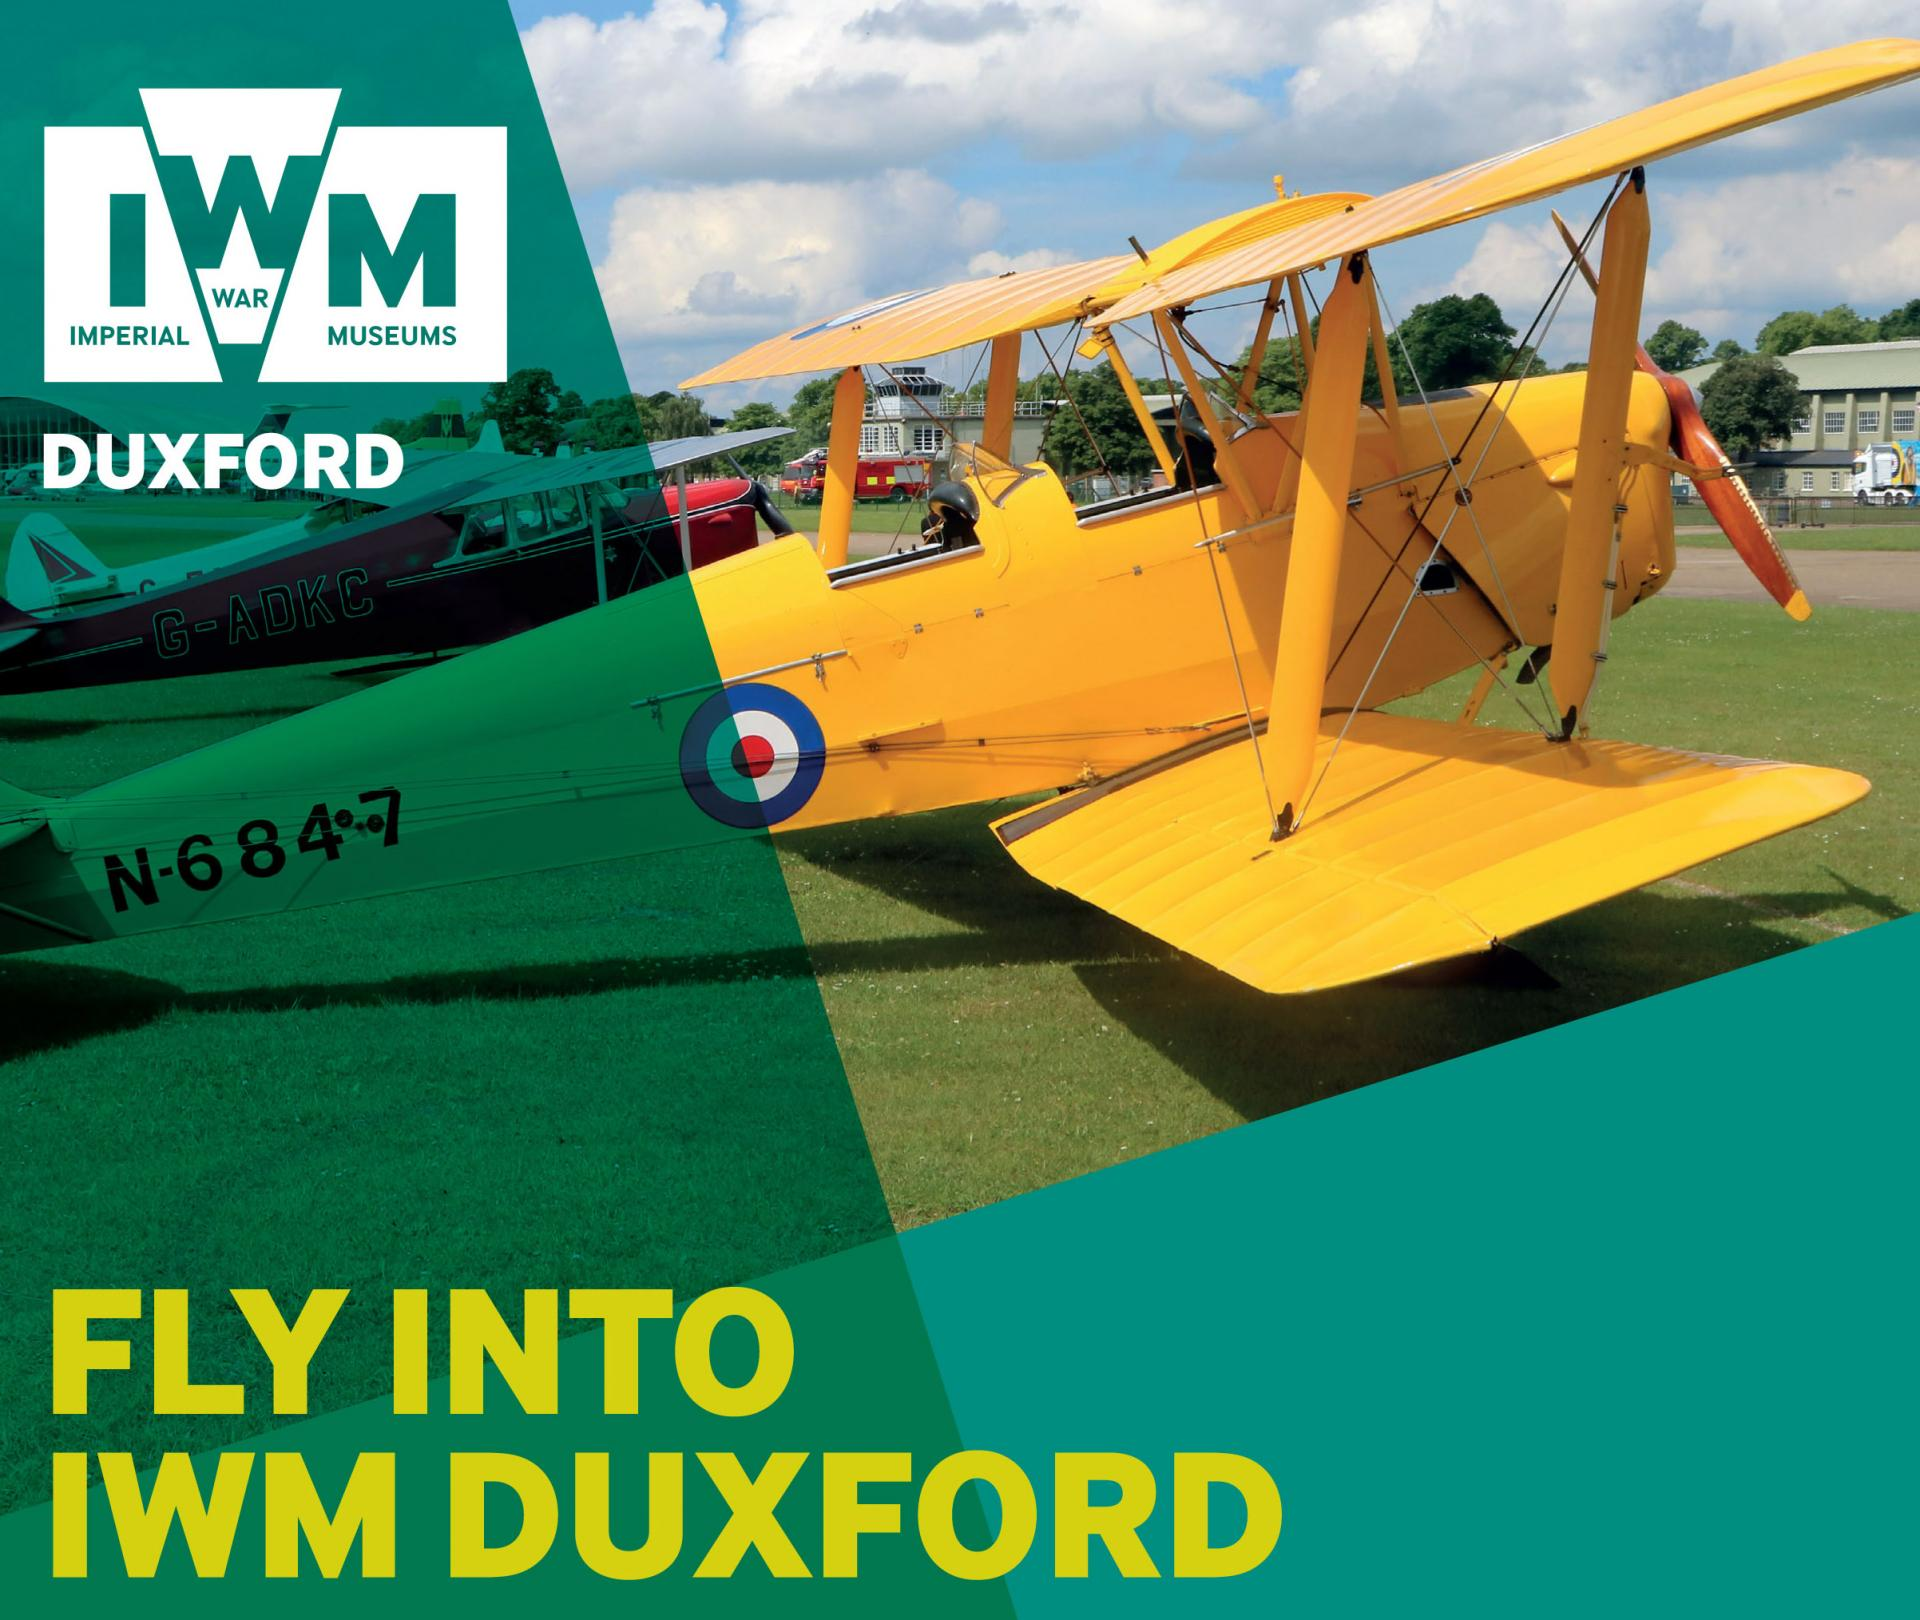 Fly into Duxford artwork